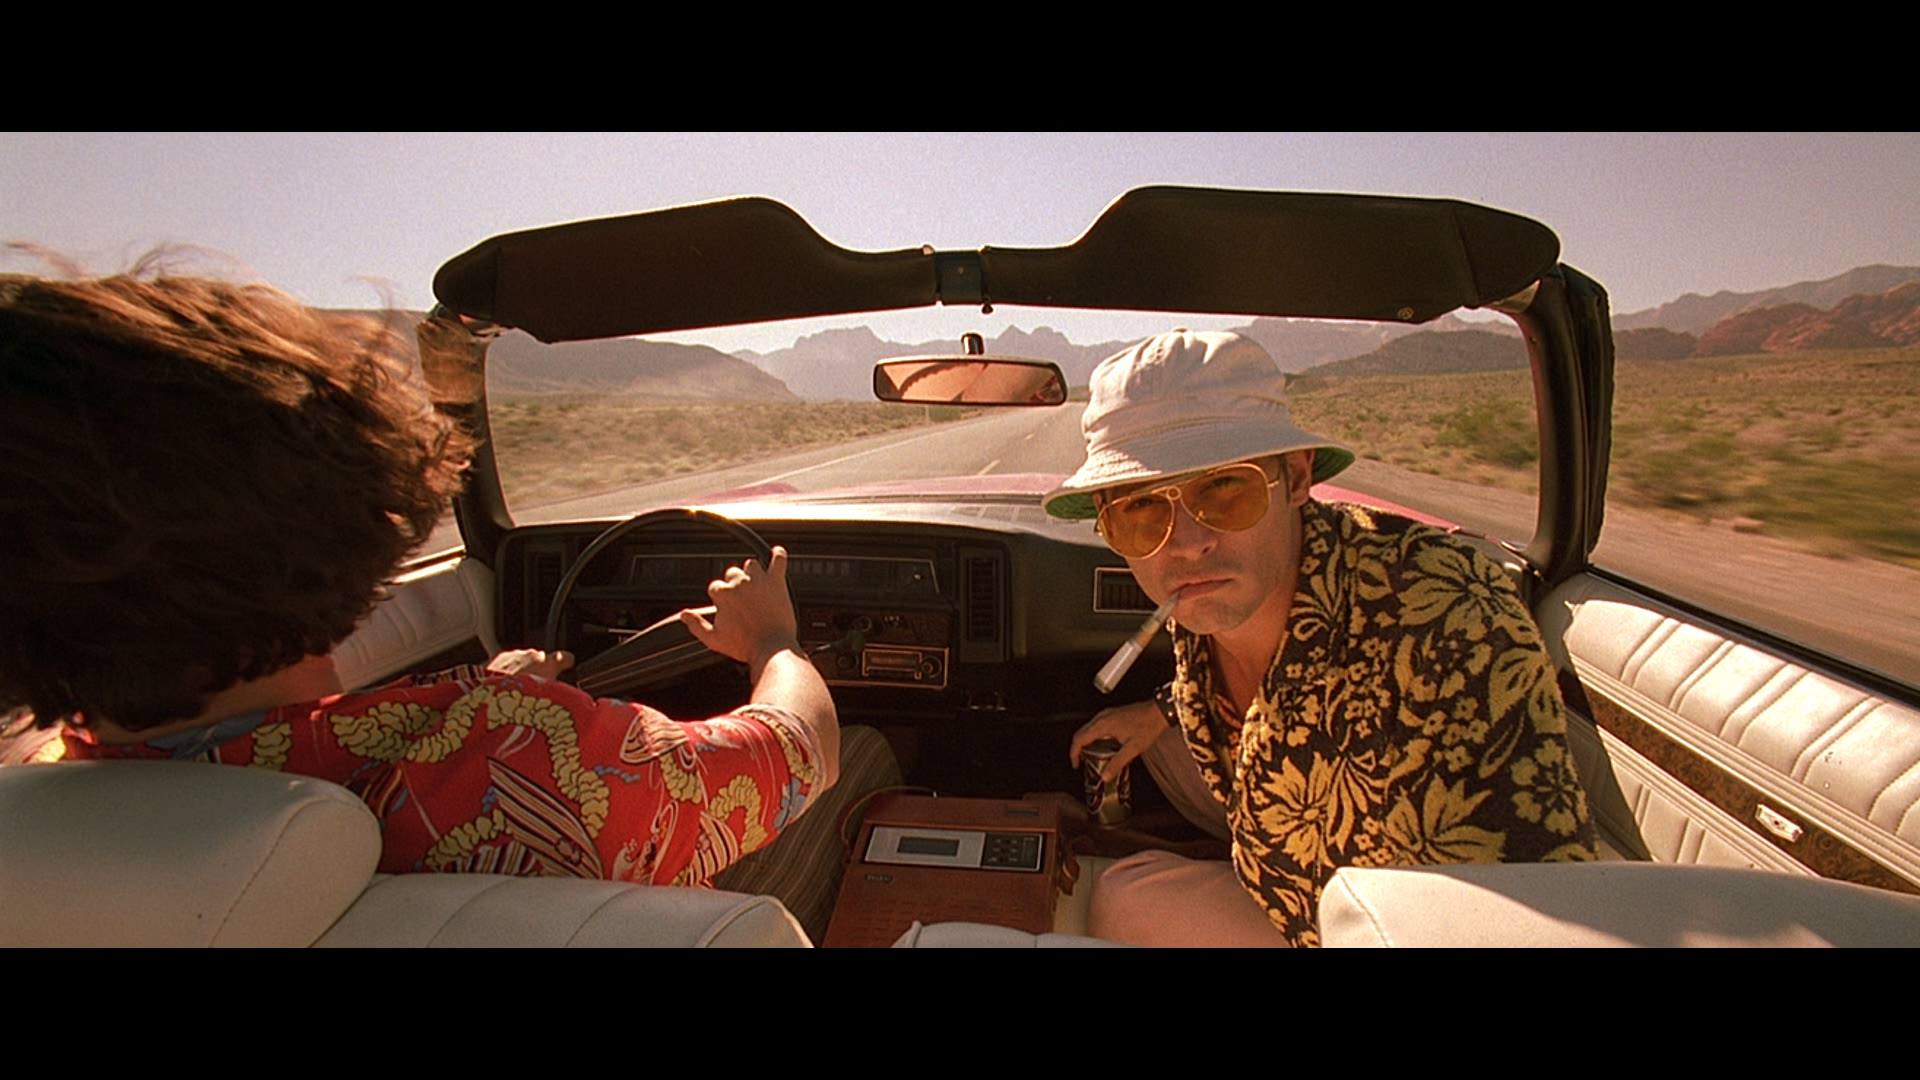 a review of the film fear and loathing in las vegas Fear and loathing in las vegas is a 1998 american scott tobias of the av club argued in his more recent review of the film that the film.